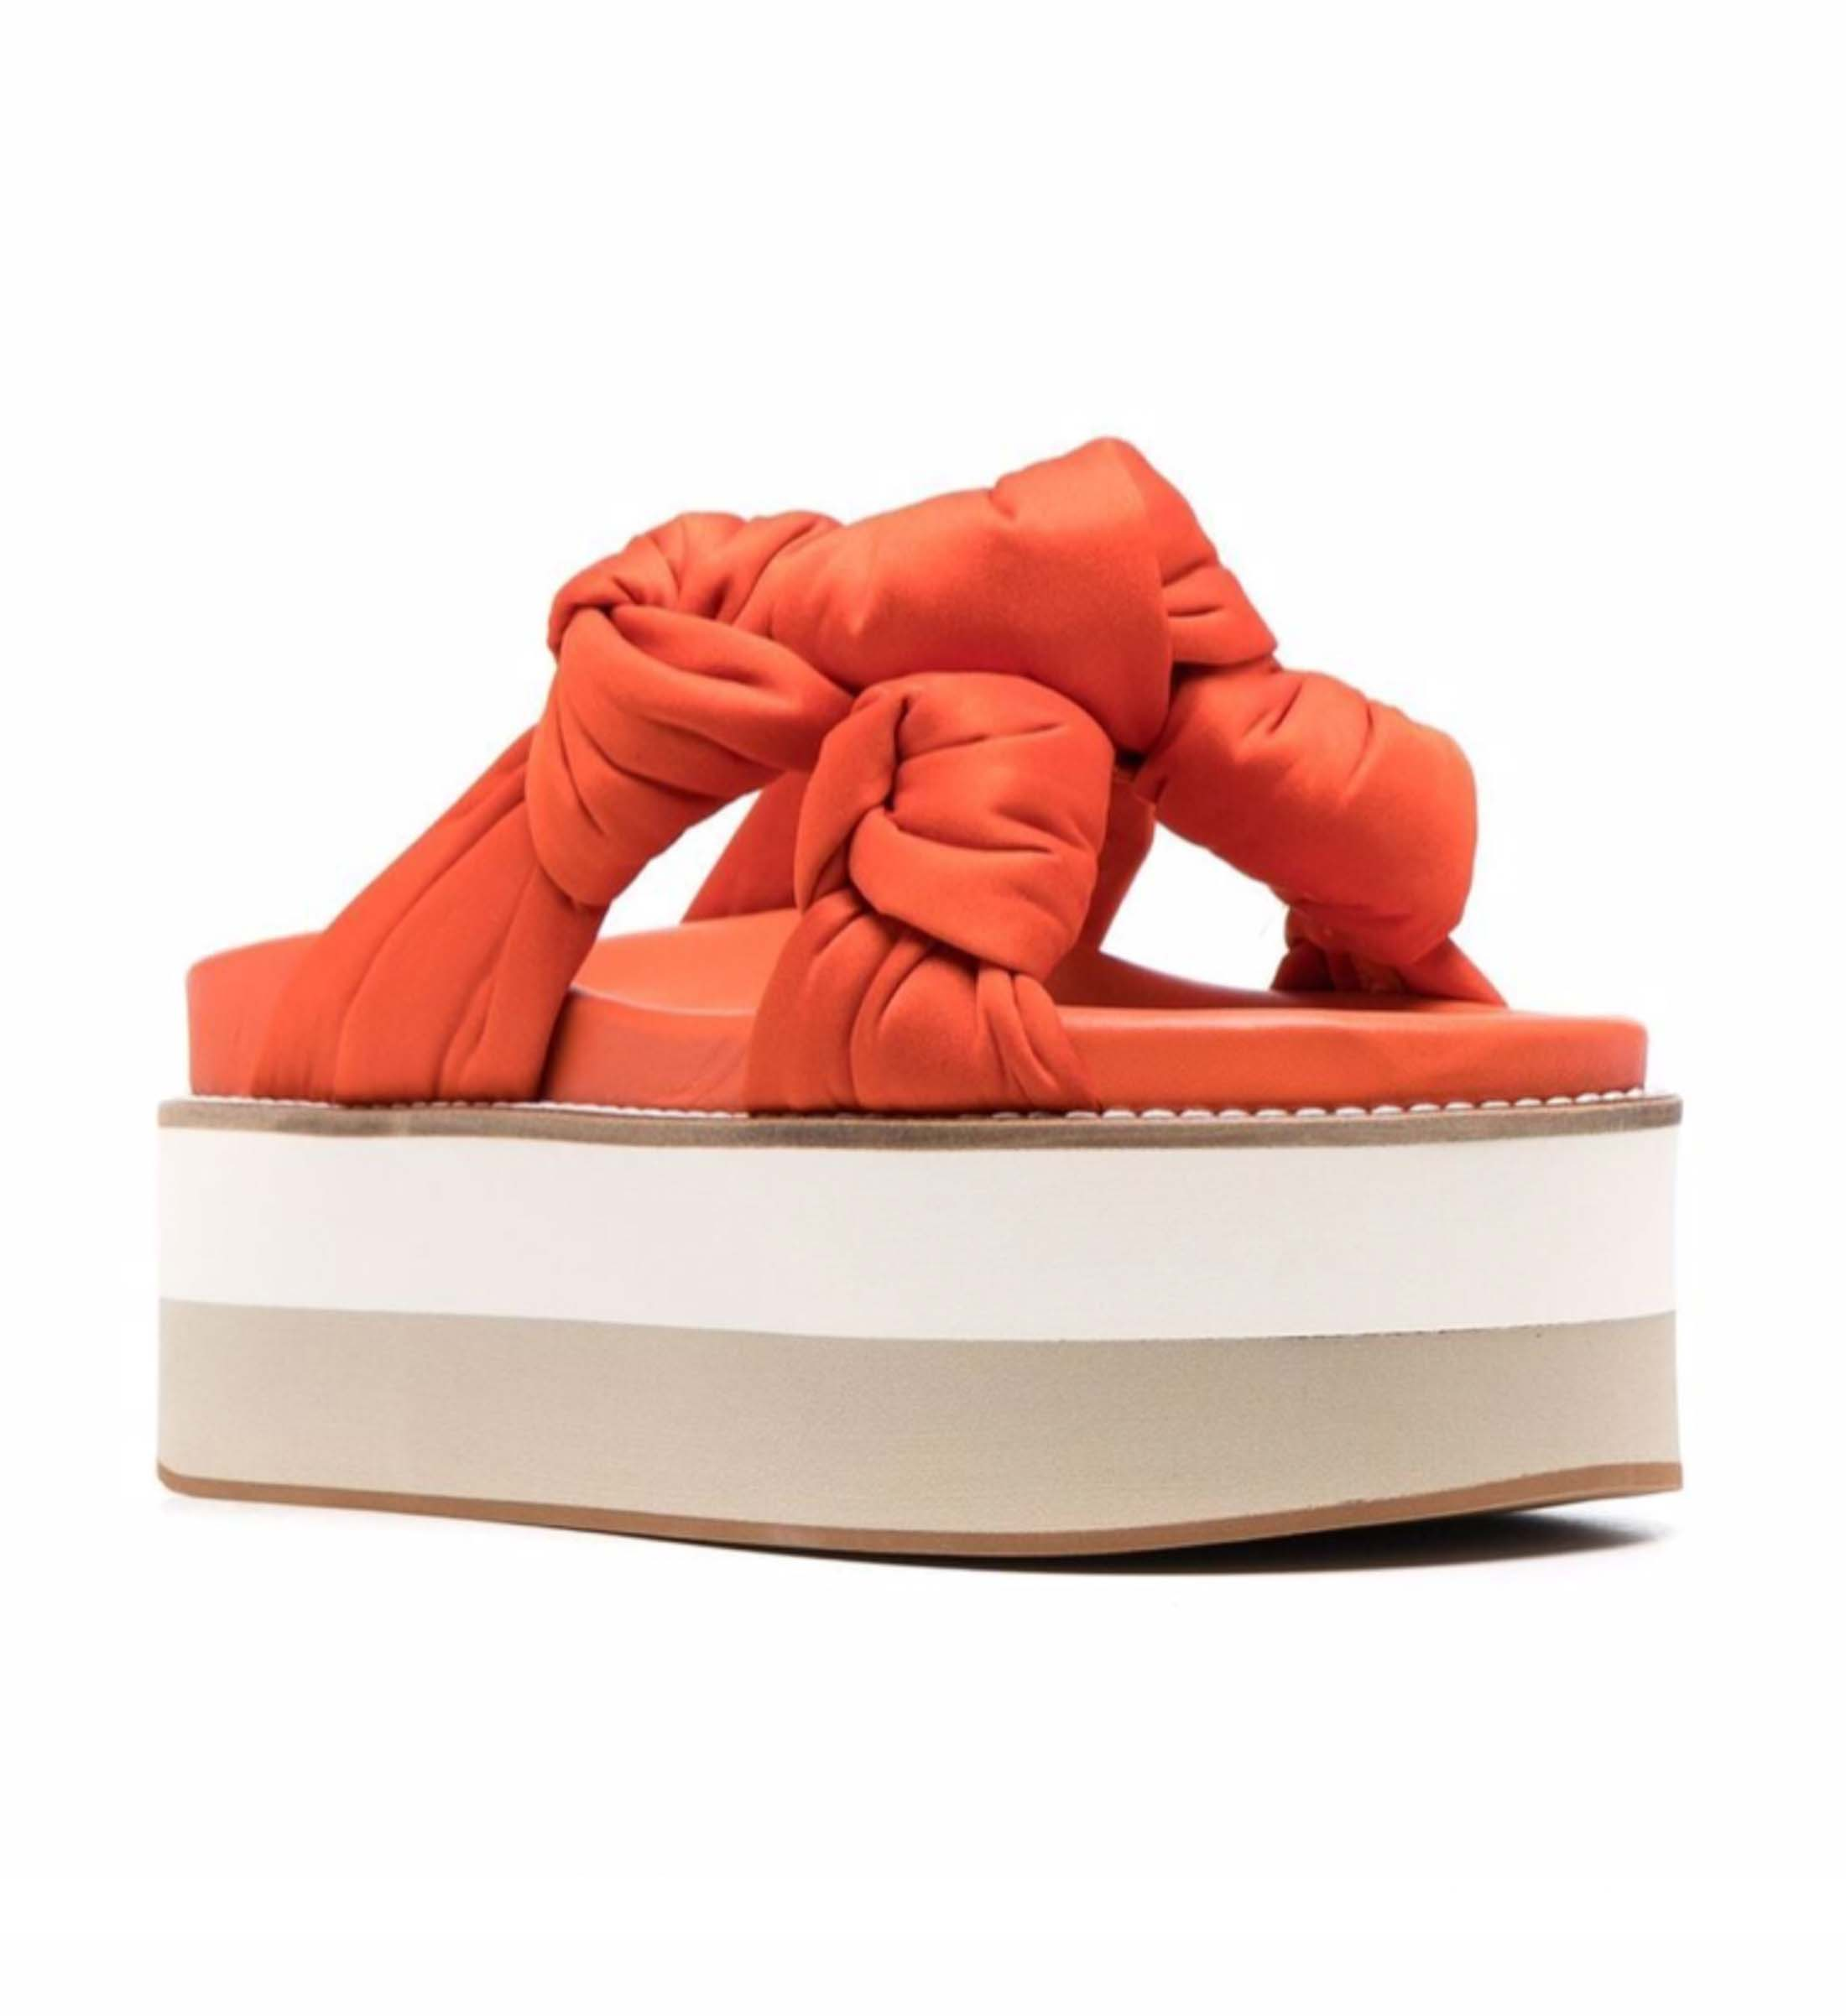 OMGEEEE I am in love with these orange Satin Knotted flatforms from GANNI.